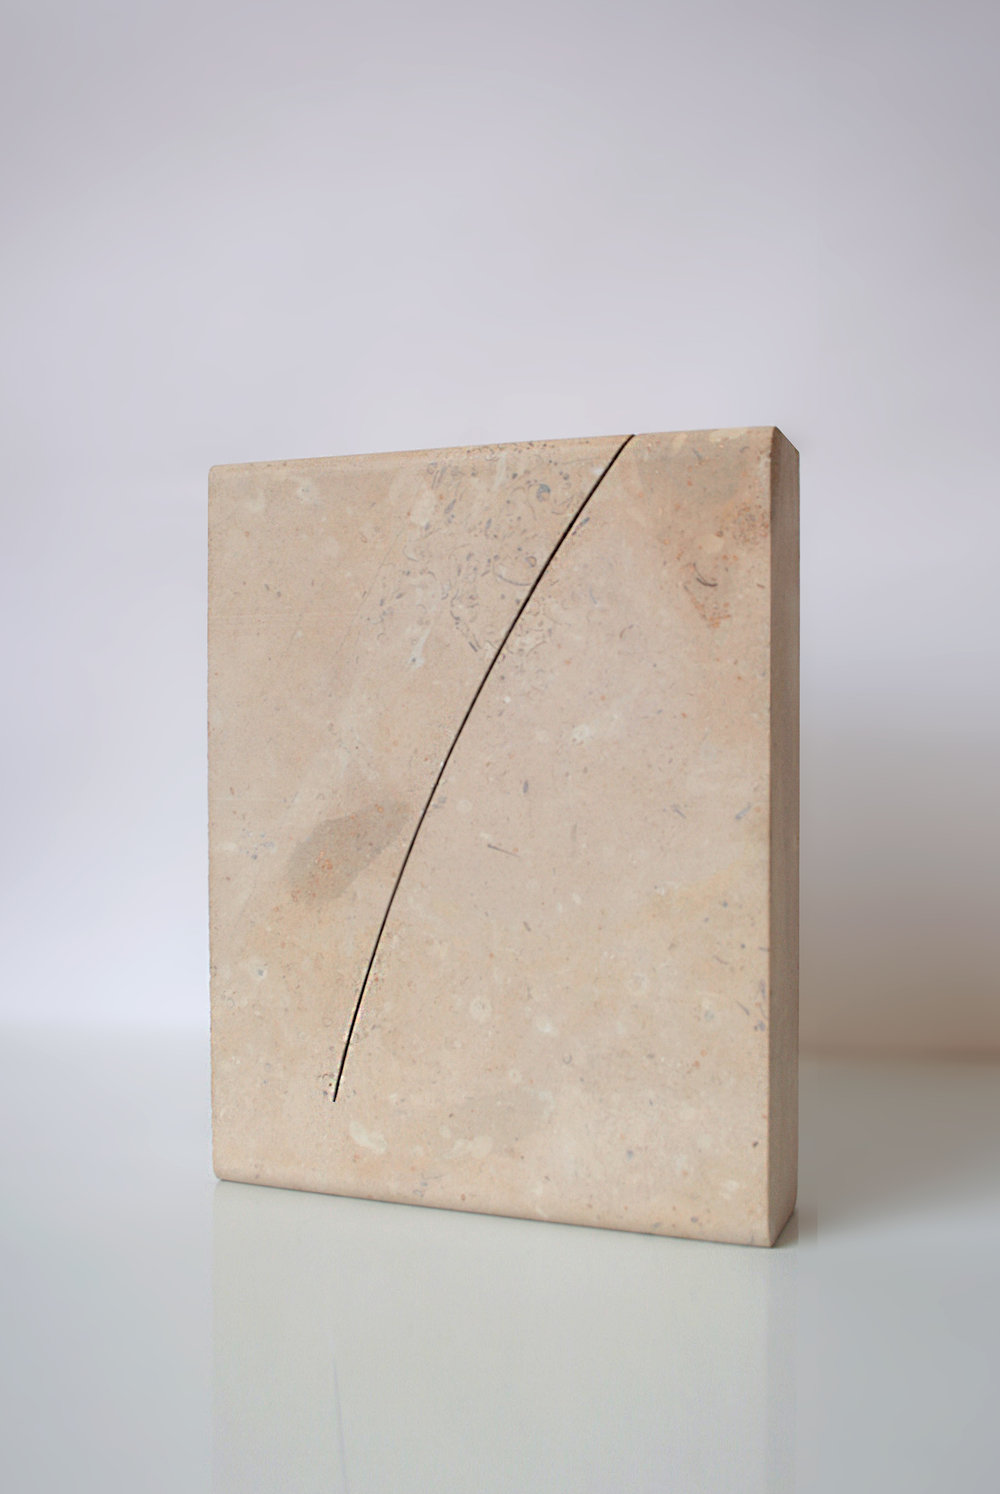 A PURE UNTROUBLED LINE II  (after Iris Murdoch) 2019 Lincolnshire limestone – silver bed 24.9 x 19.5 x 5.0 cm